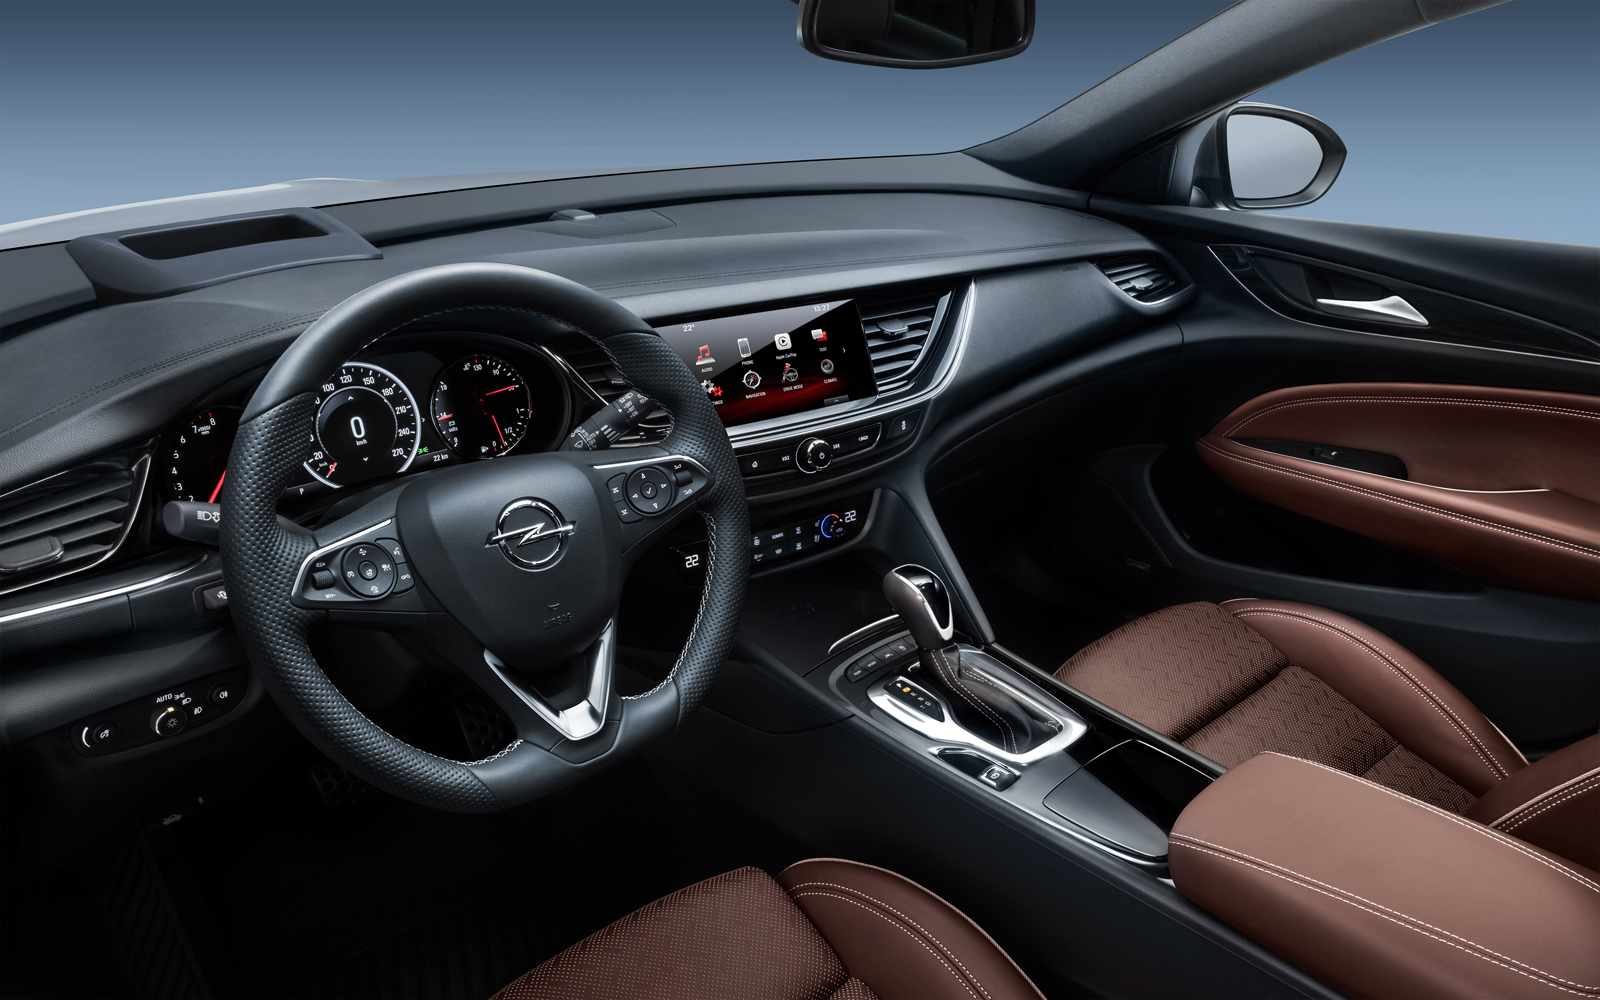 Neatly arranged cockpit: The driver of the new Opel Insignia Sports Tourer sits deep, surrounded by the instrument panel and the center console.